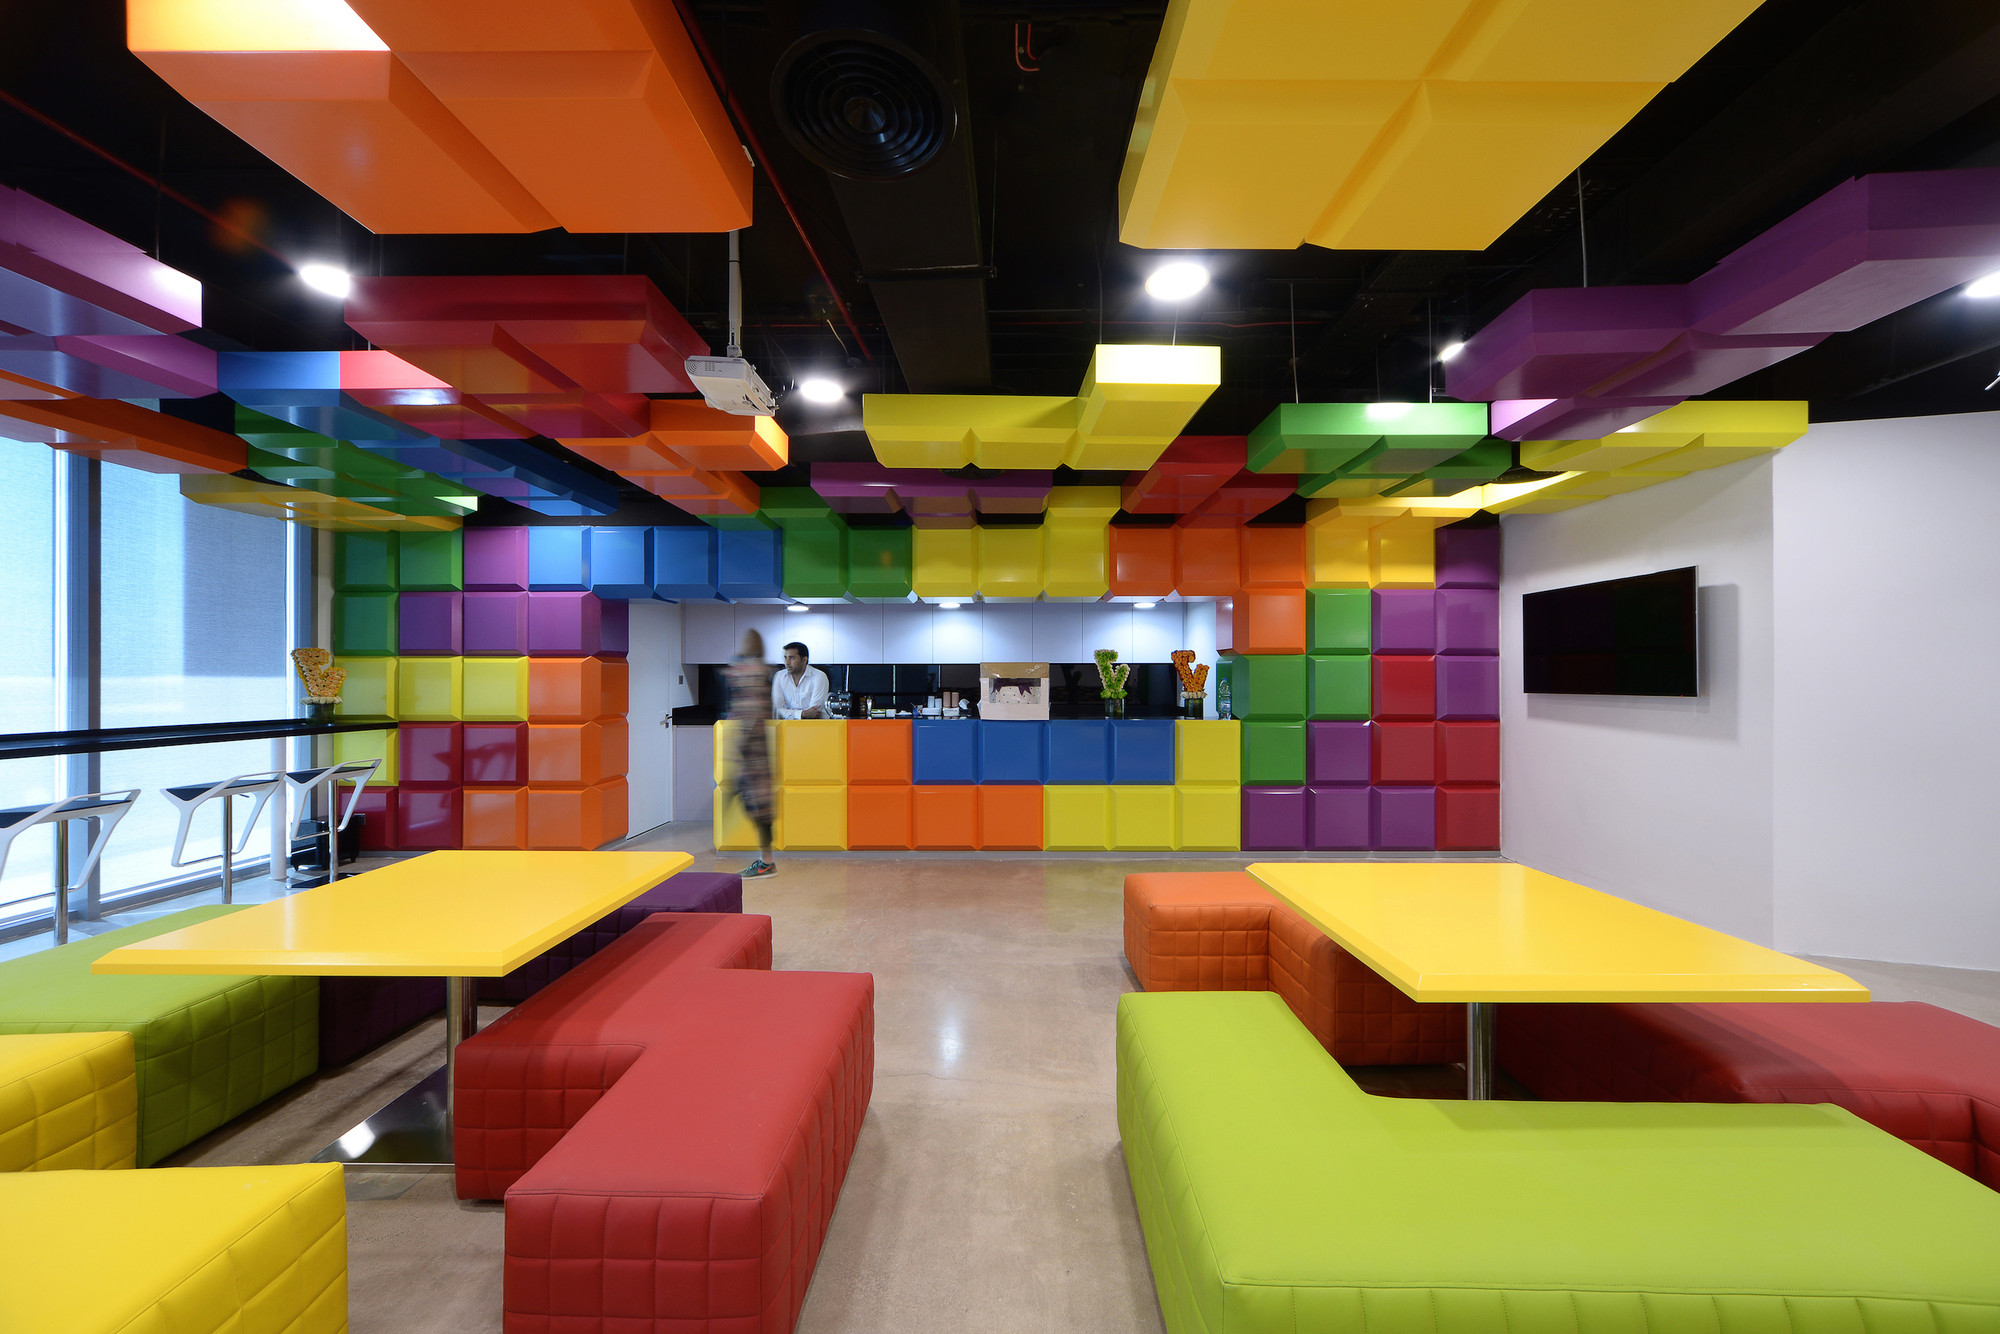 Gallery of viola communications office m n architecture 4 for Advertising agencies office interior design